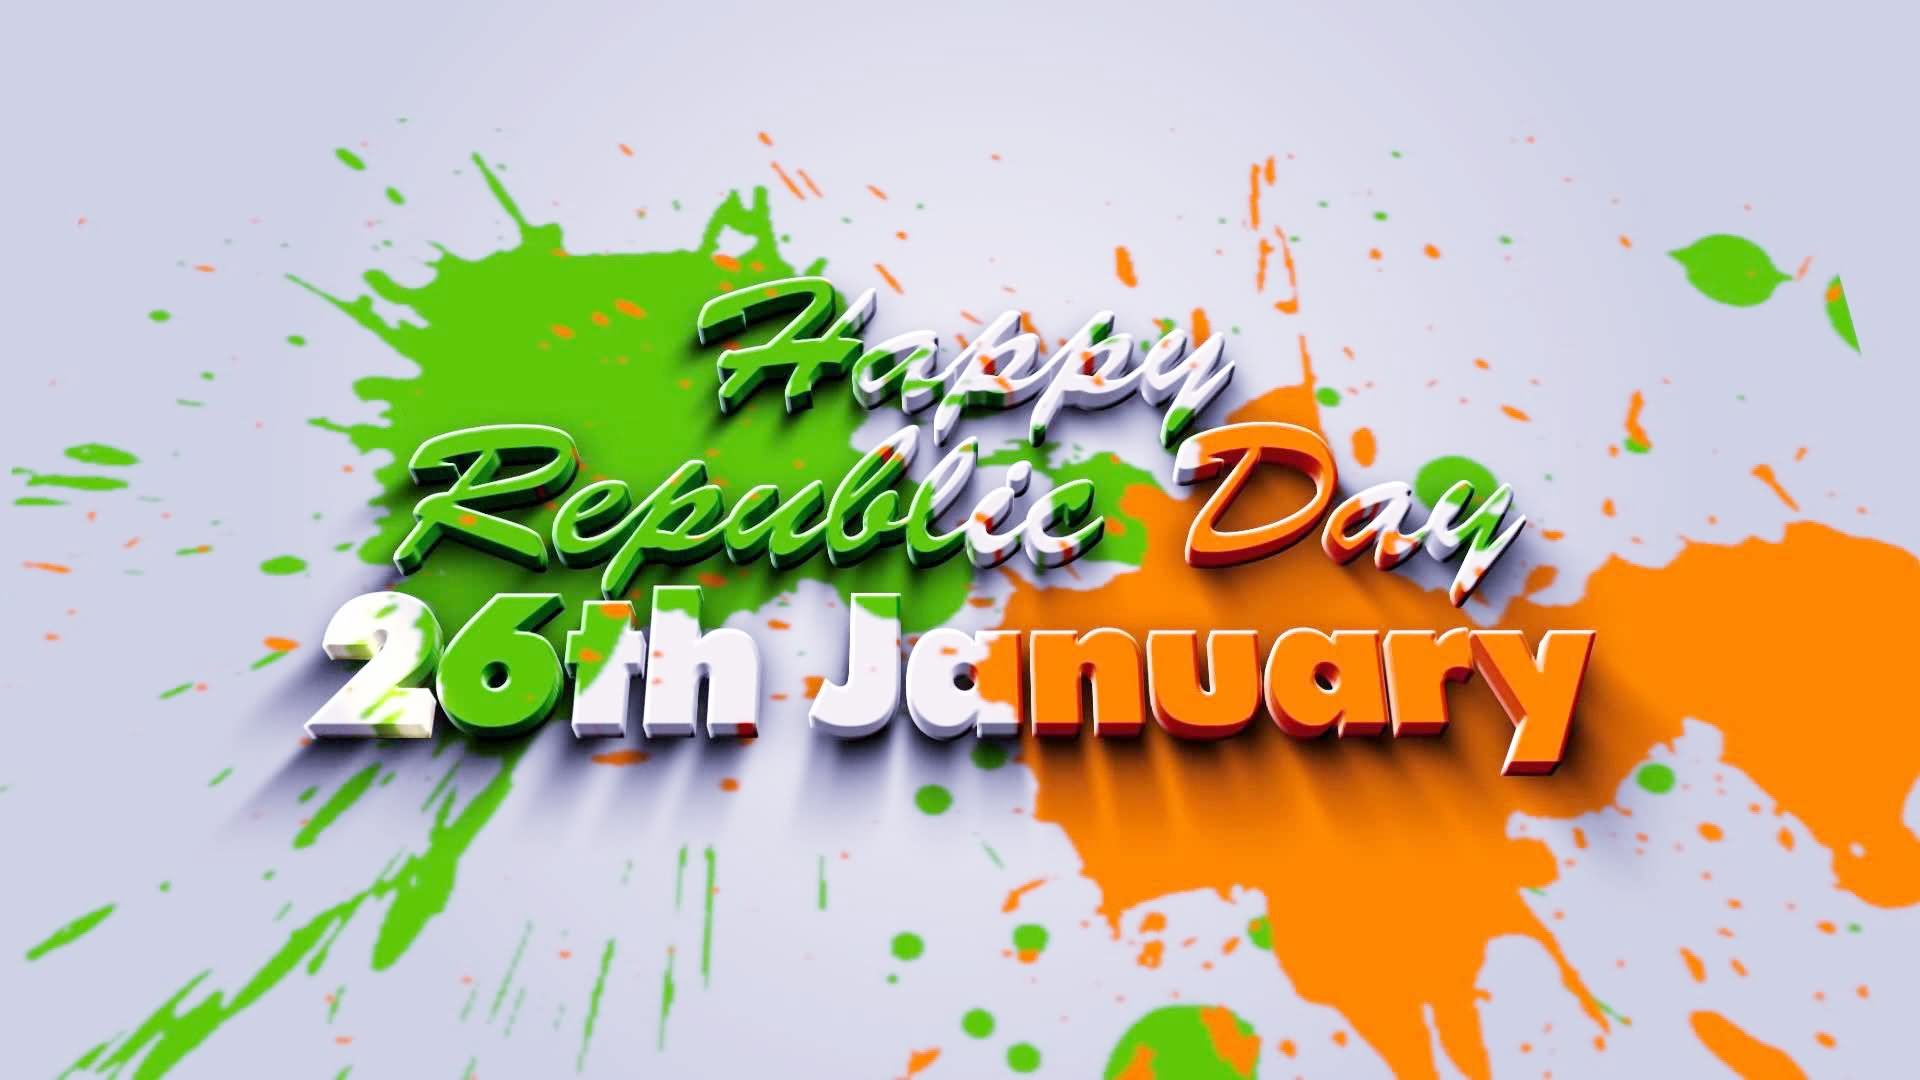 Republic Day Images 26 January Wallpapers Photo